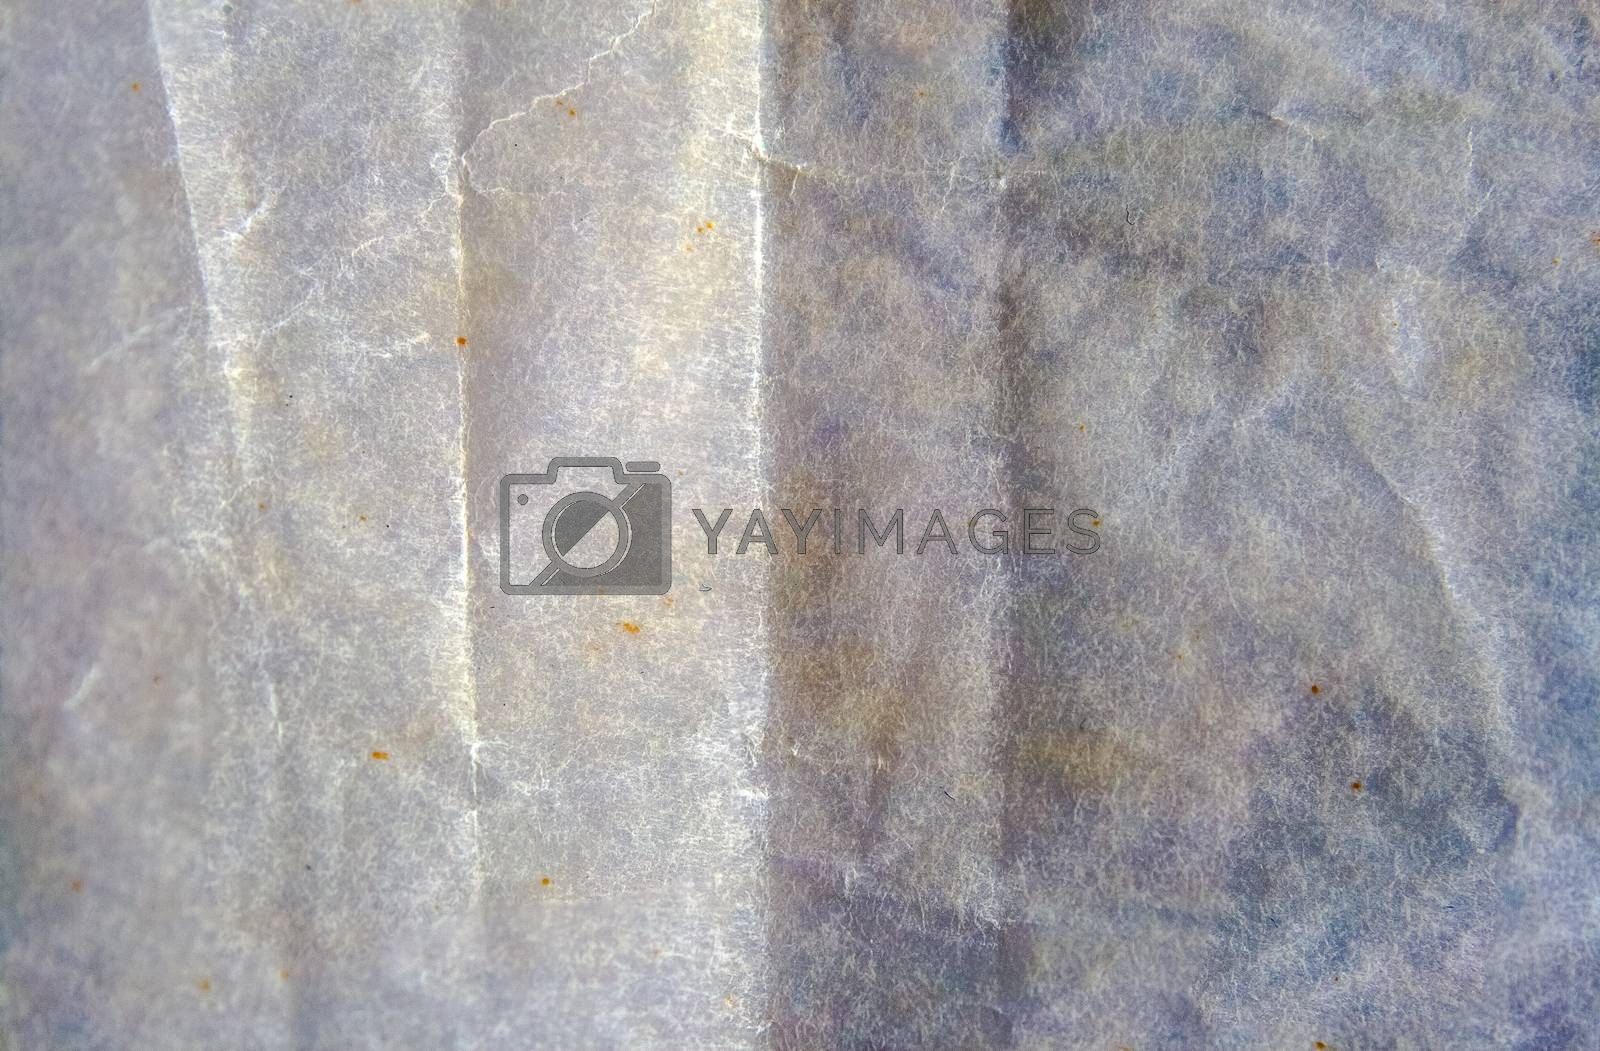 wrinkled paper background with many details